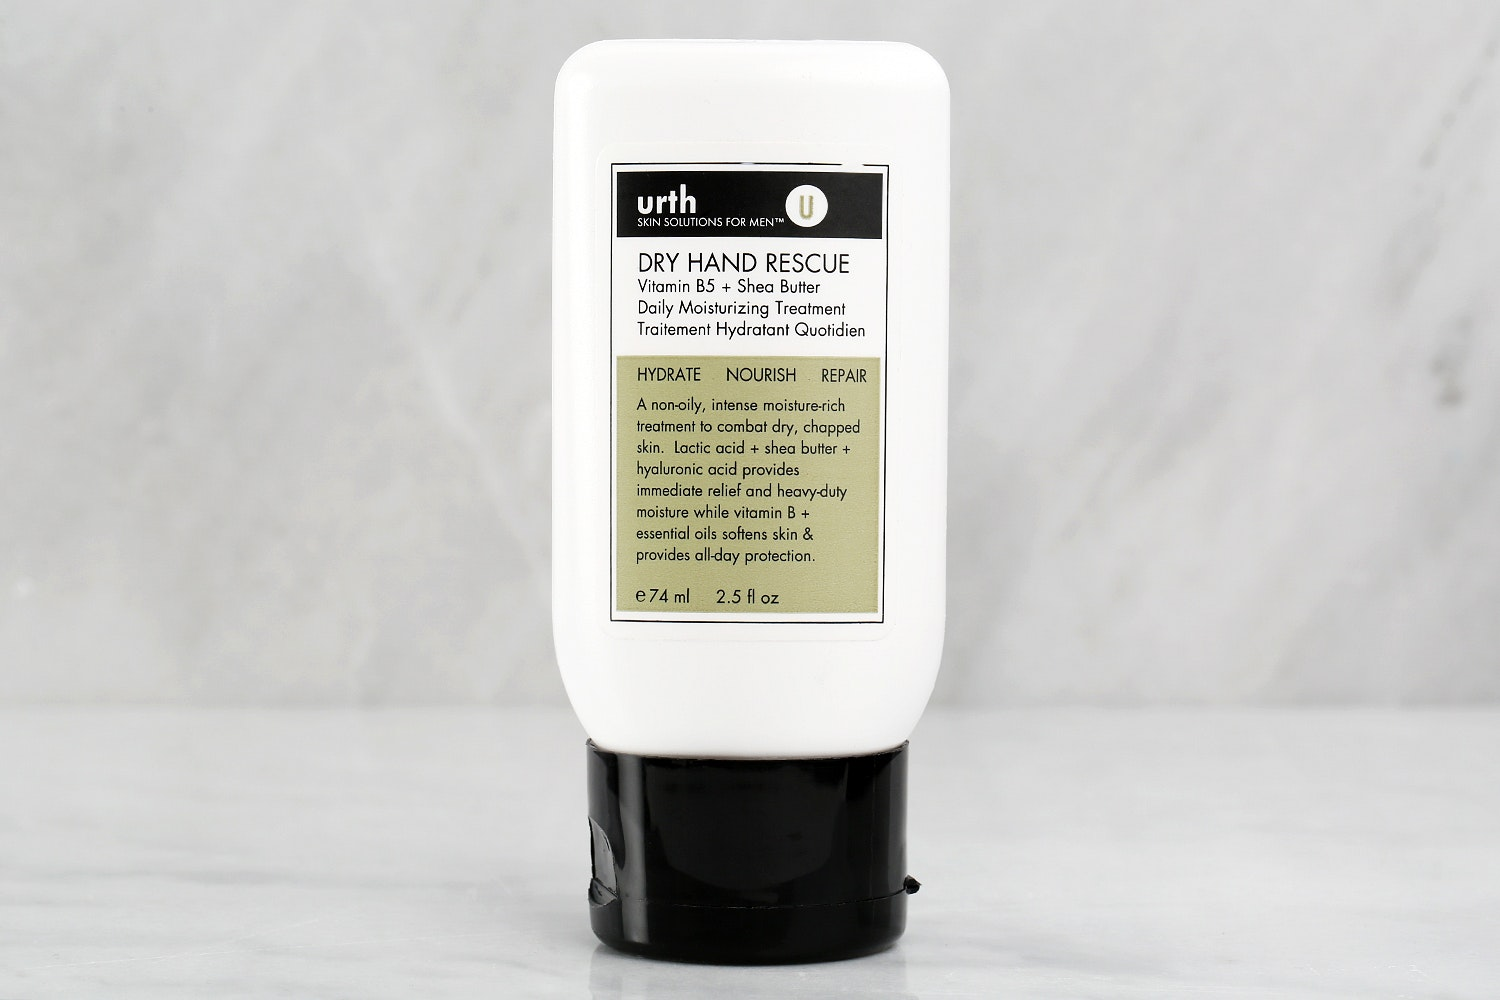 Urth Dry Hand Rescue